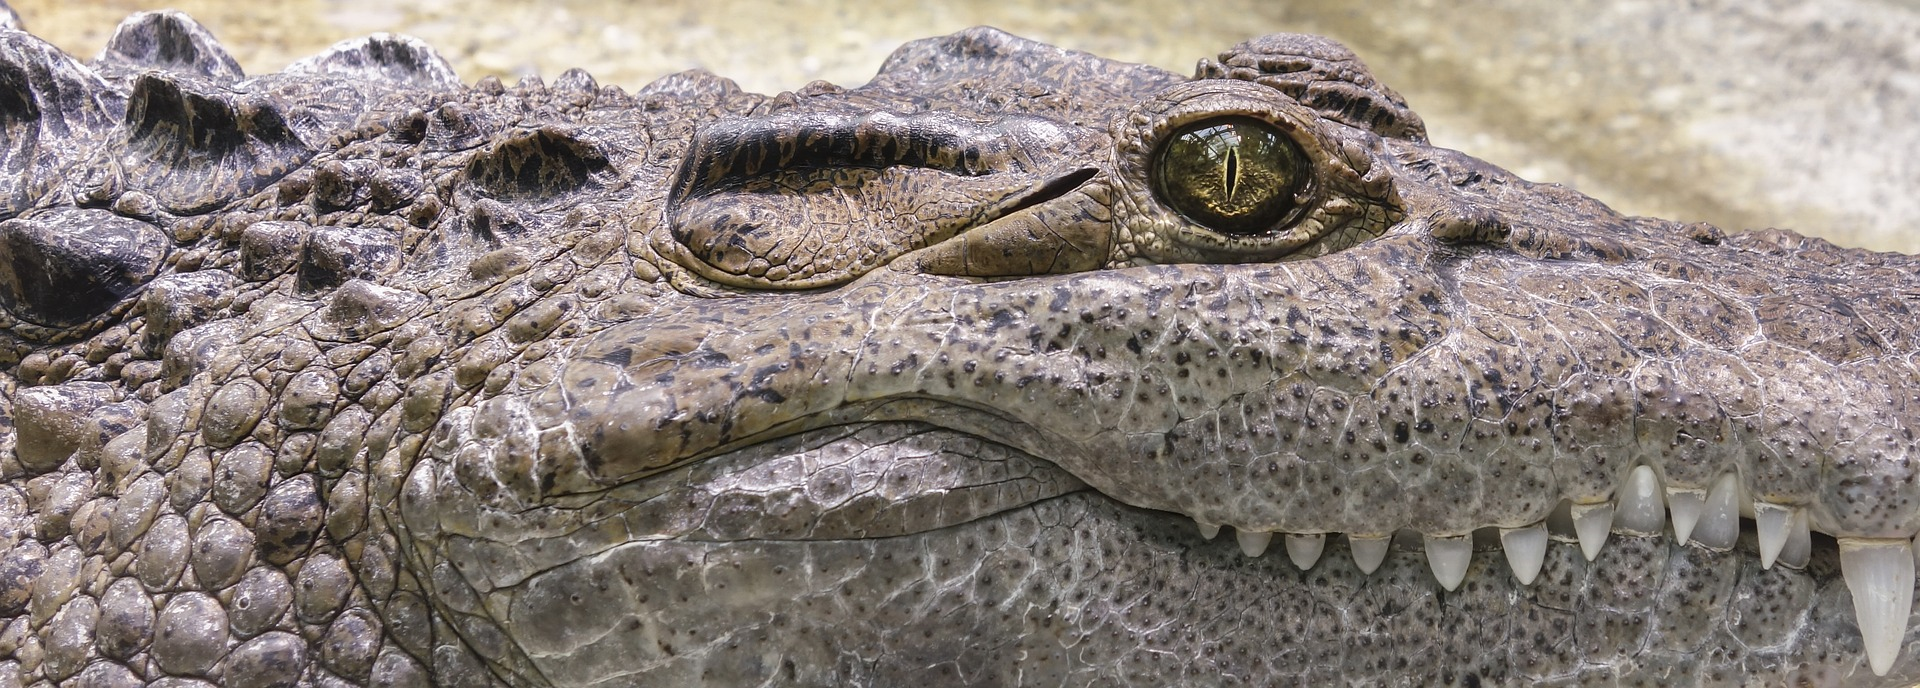 Face of a crocodile, up close, side view, bright day. Eye v. dark, teeth v. white. Yellow-brown dirt in background.